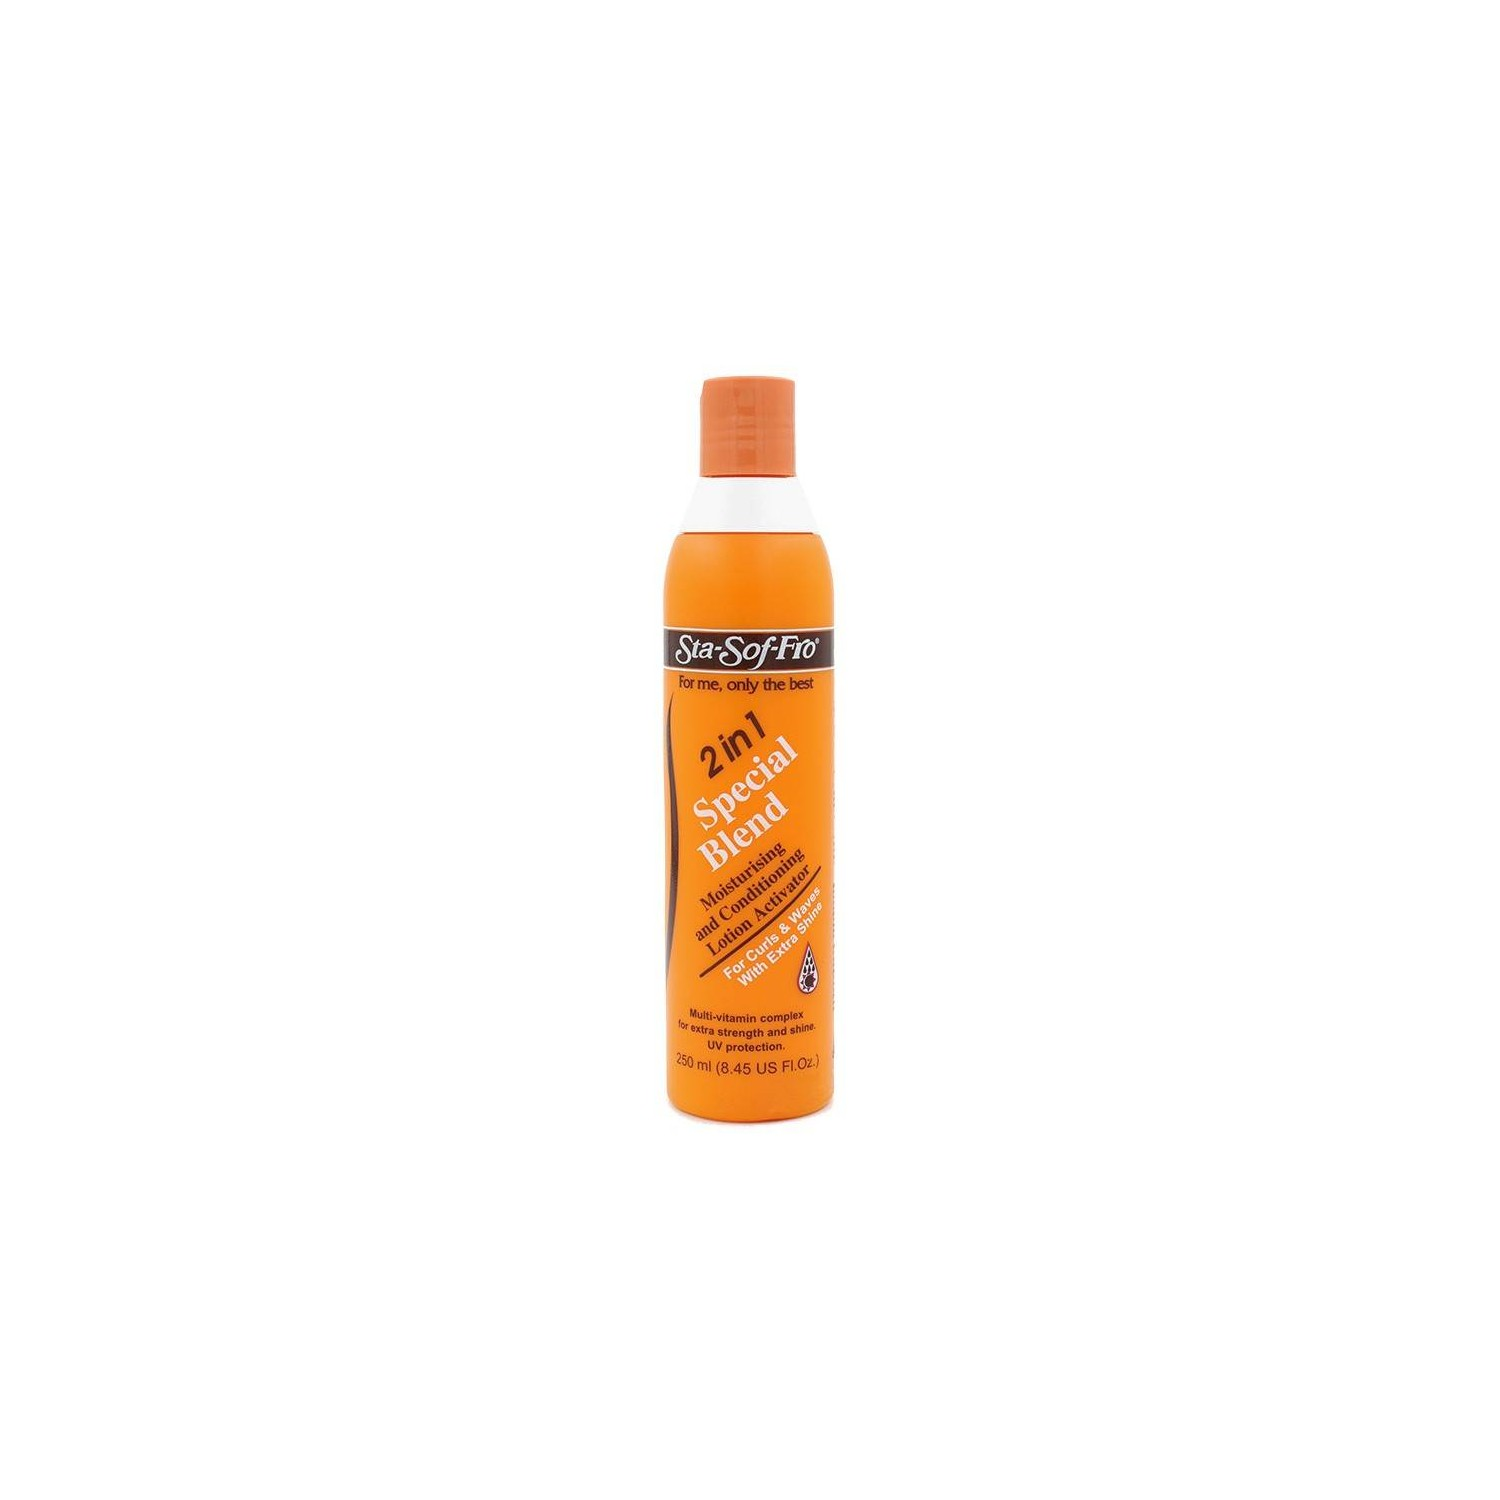 Sta Soft Fro 2in1 Special Blend Lotion 250 Ml